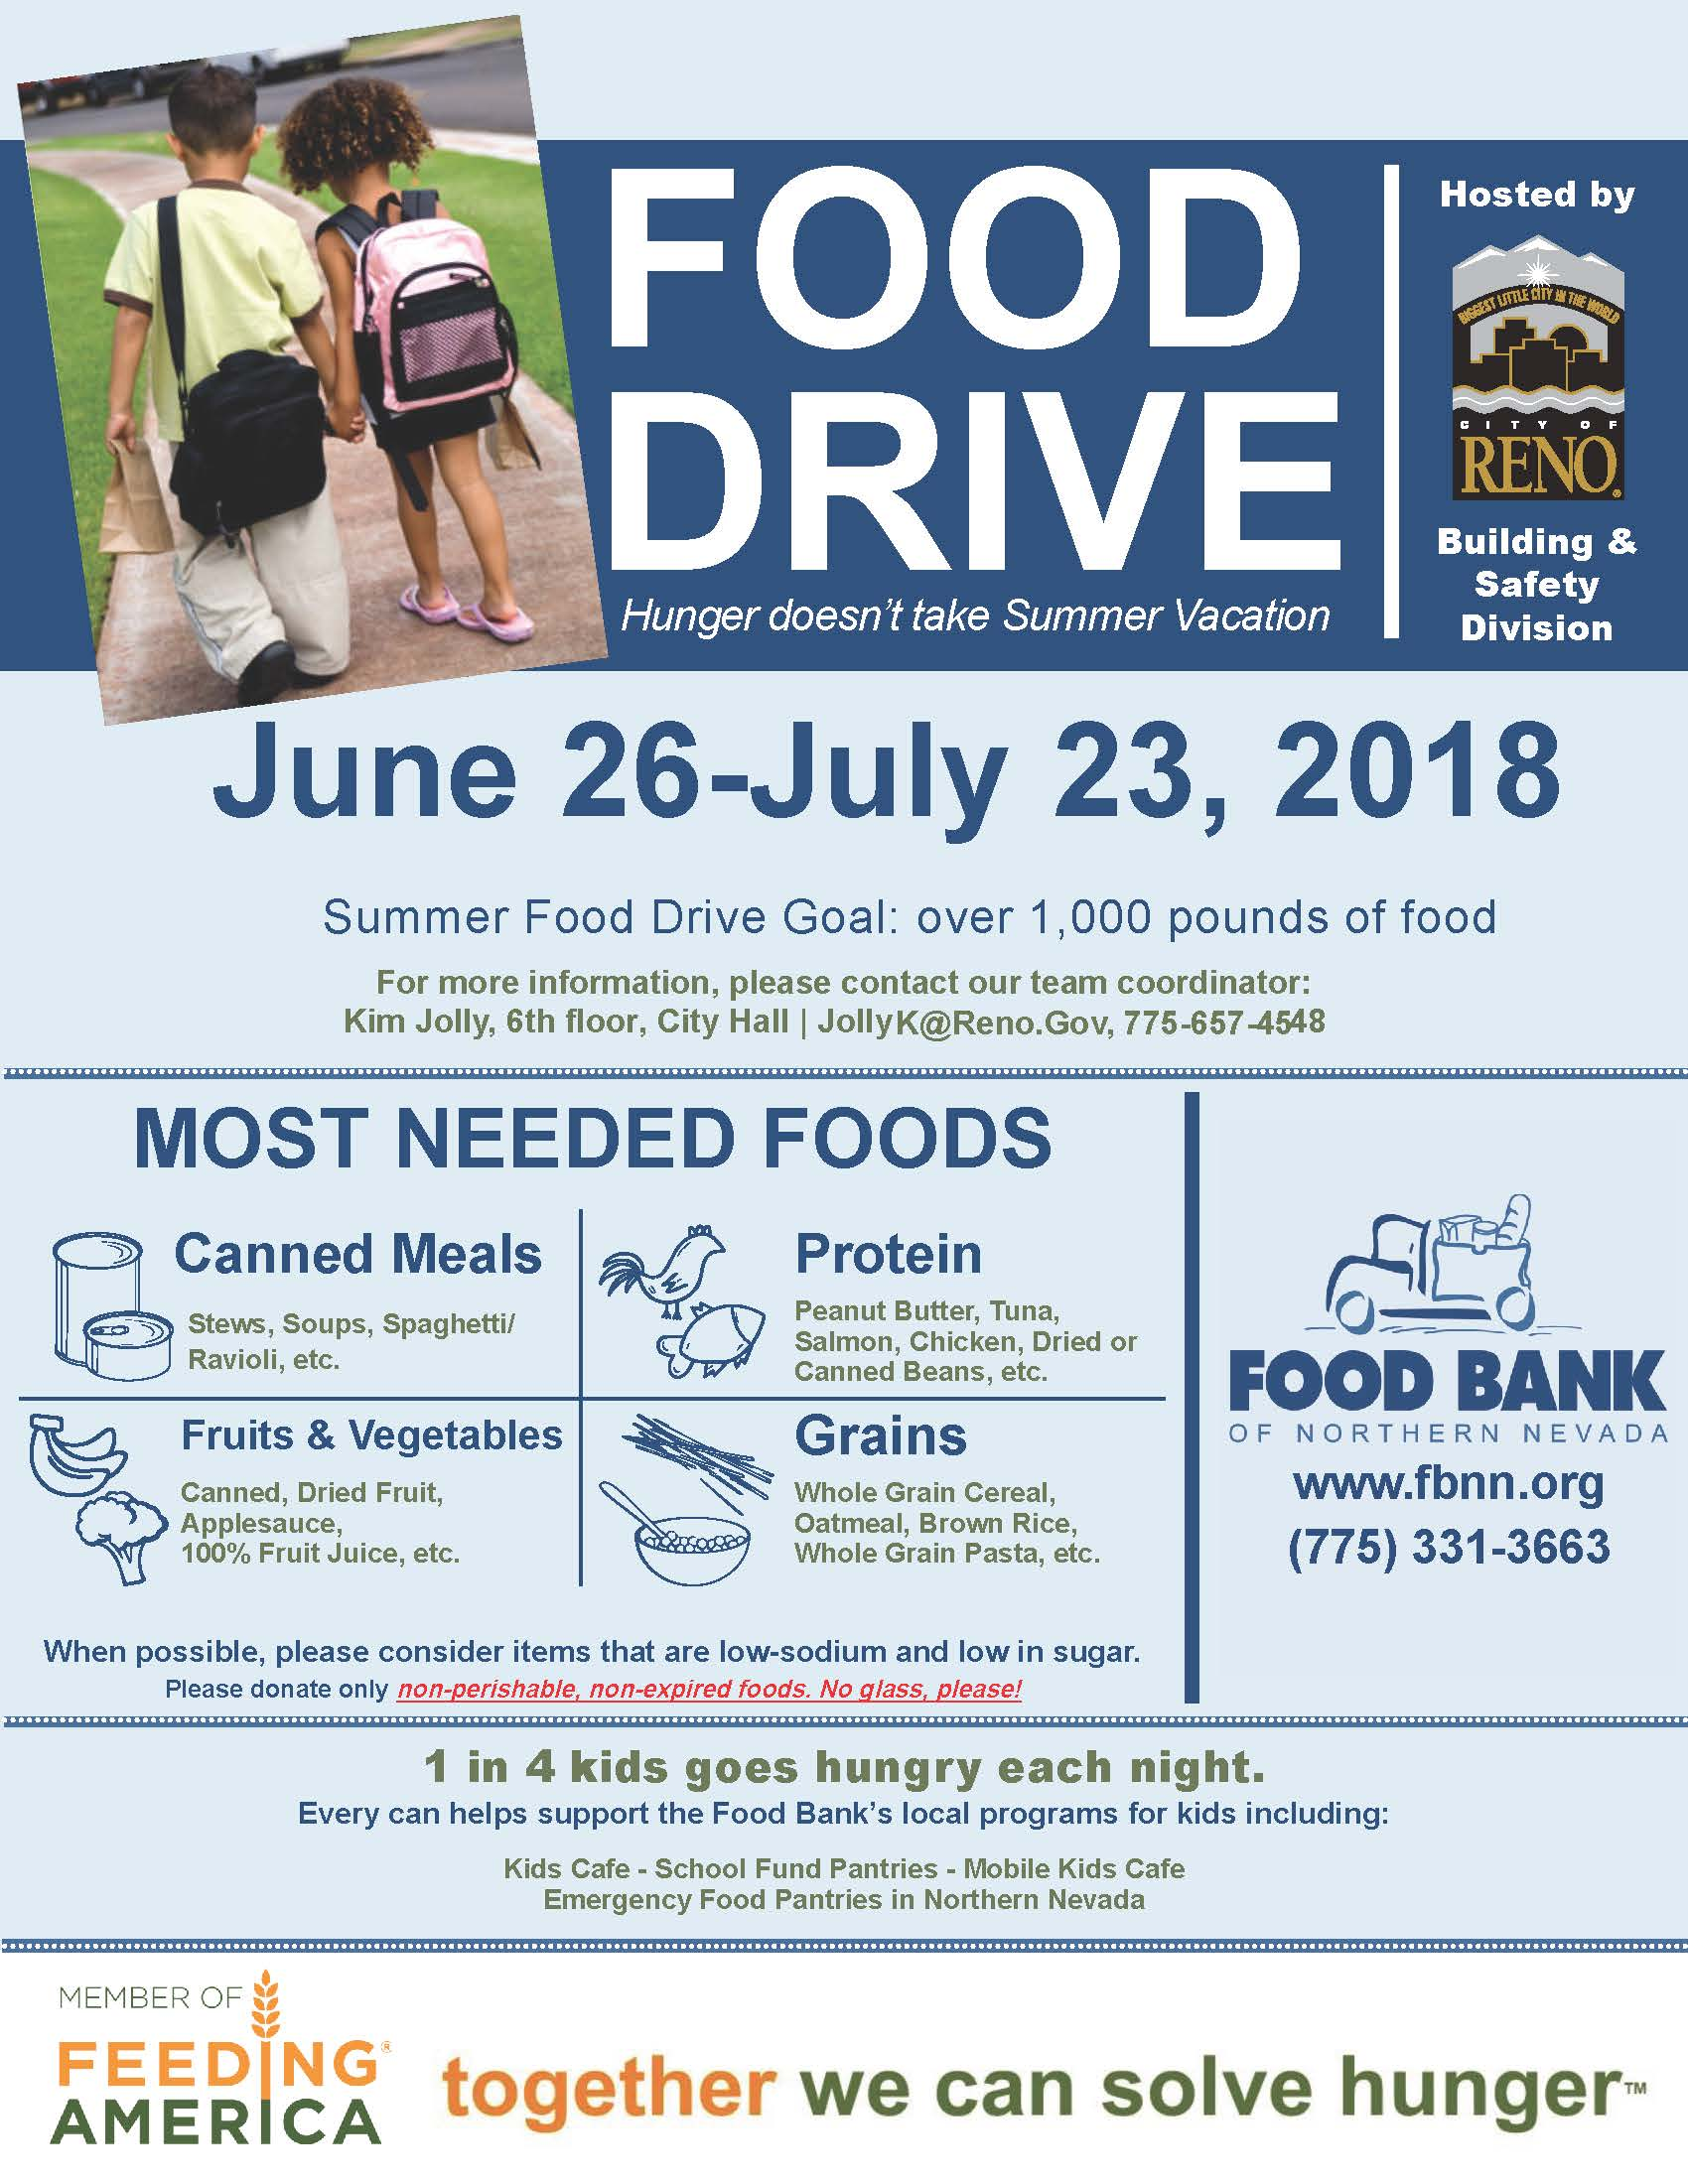 Flyer for Food Drive June 26 through July 23, 2018. Most needed items include canned meals, protein, fruits and vegetables, and grains. Every can helps support the Food Bank's local program for kids.